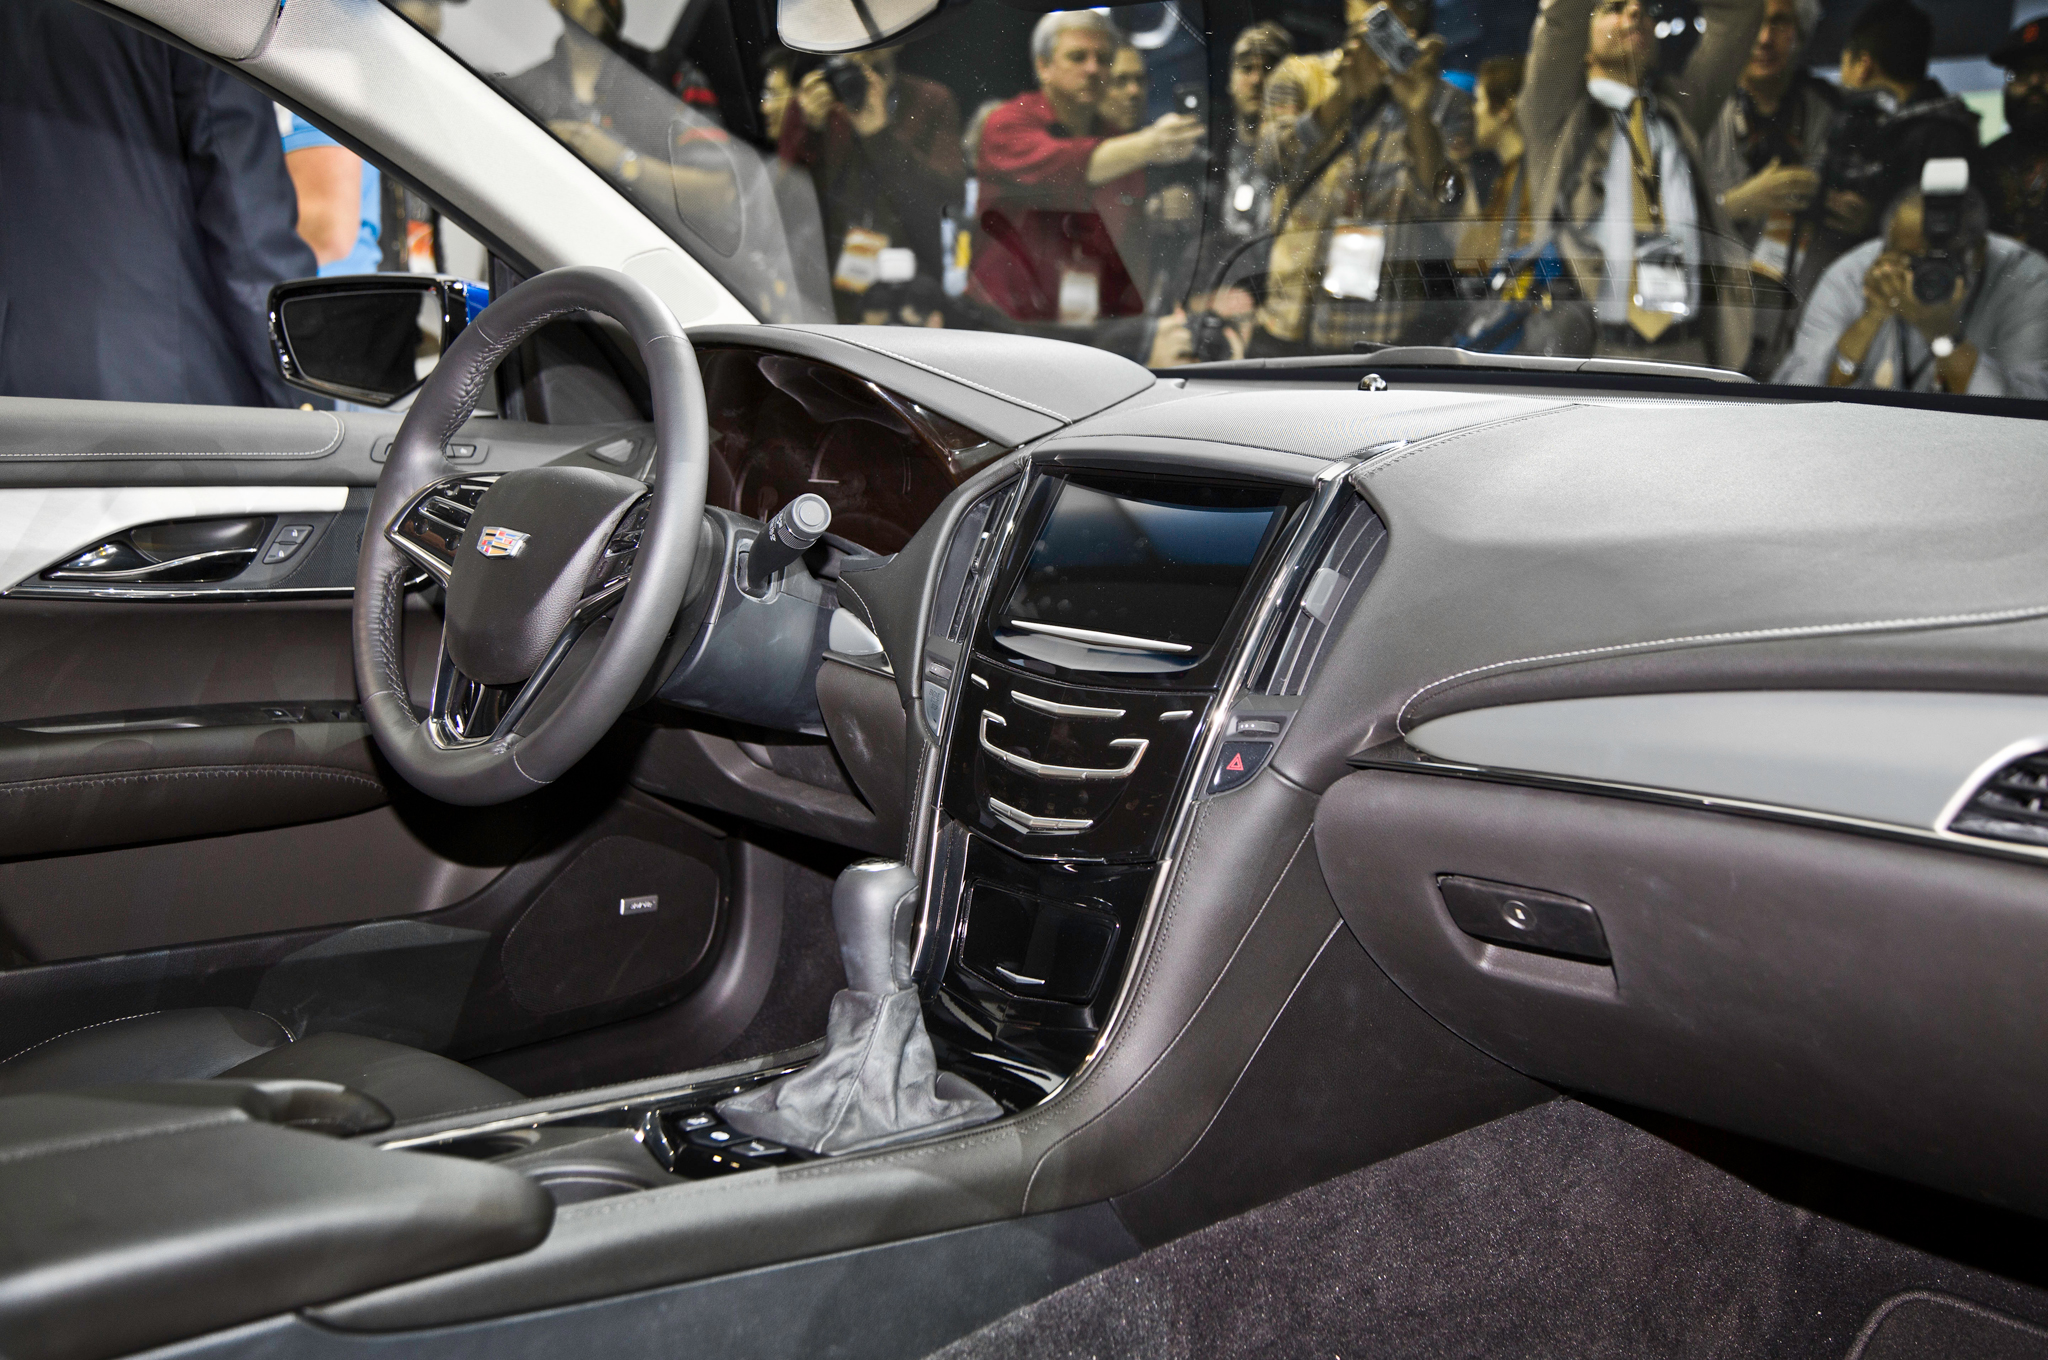 2015 Cadillac Ats Coupe Interior Dash (Photo 17 of 21)